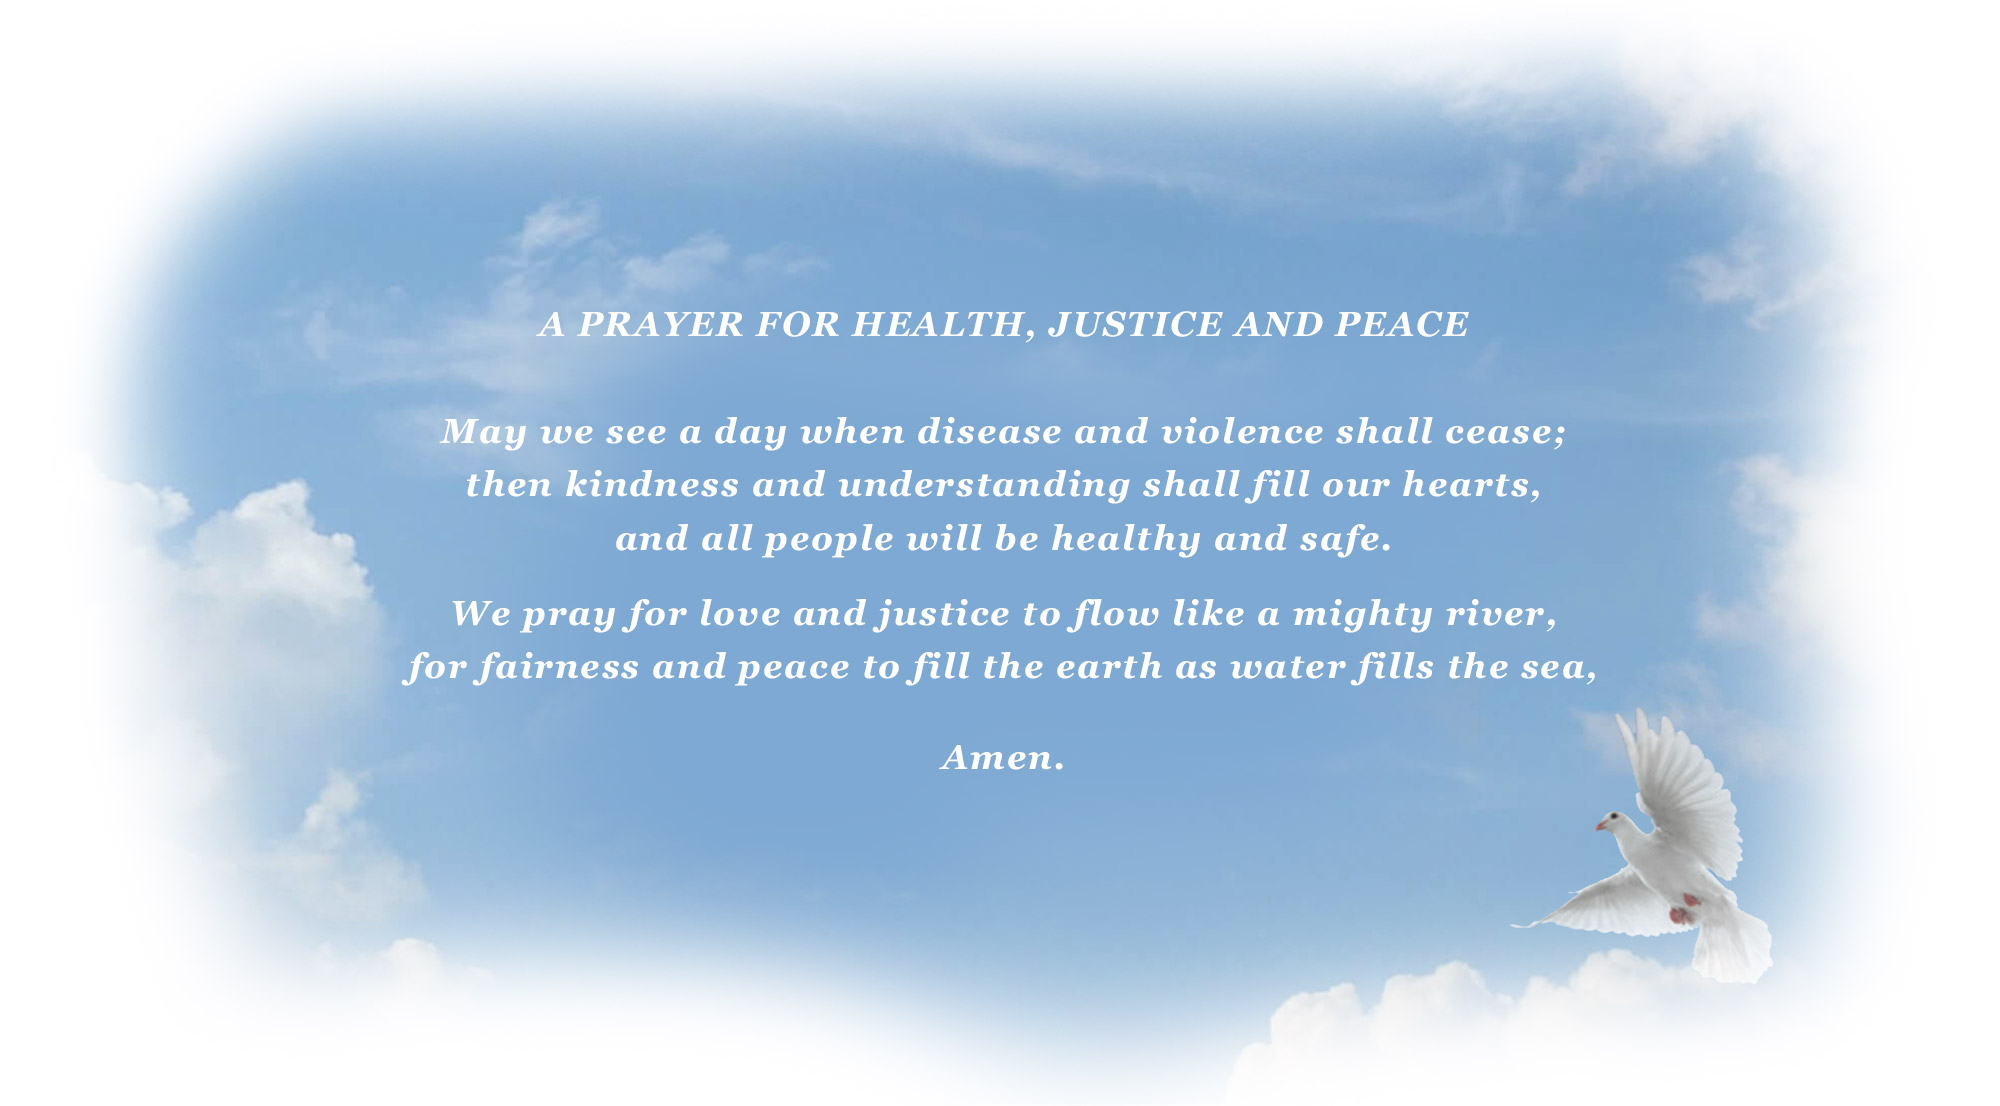 A PRAYER FOR HEALTH, JUSTICE AND PEACE